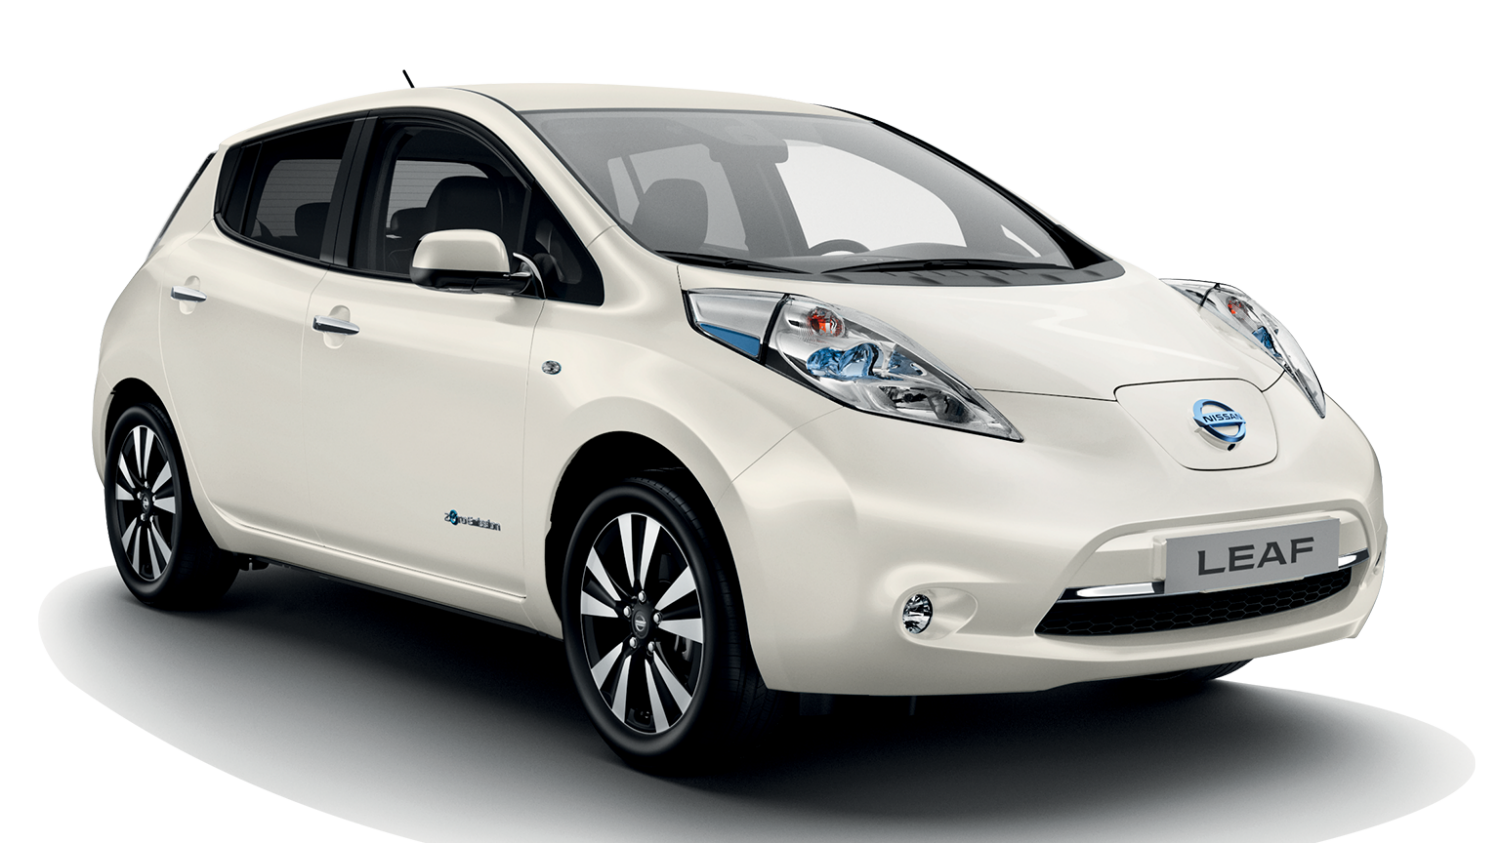 prix caract ristiques nissan leaf nissan. Black Bedroom Furniture Sets. Home Design Ideas